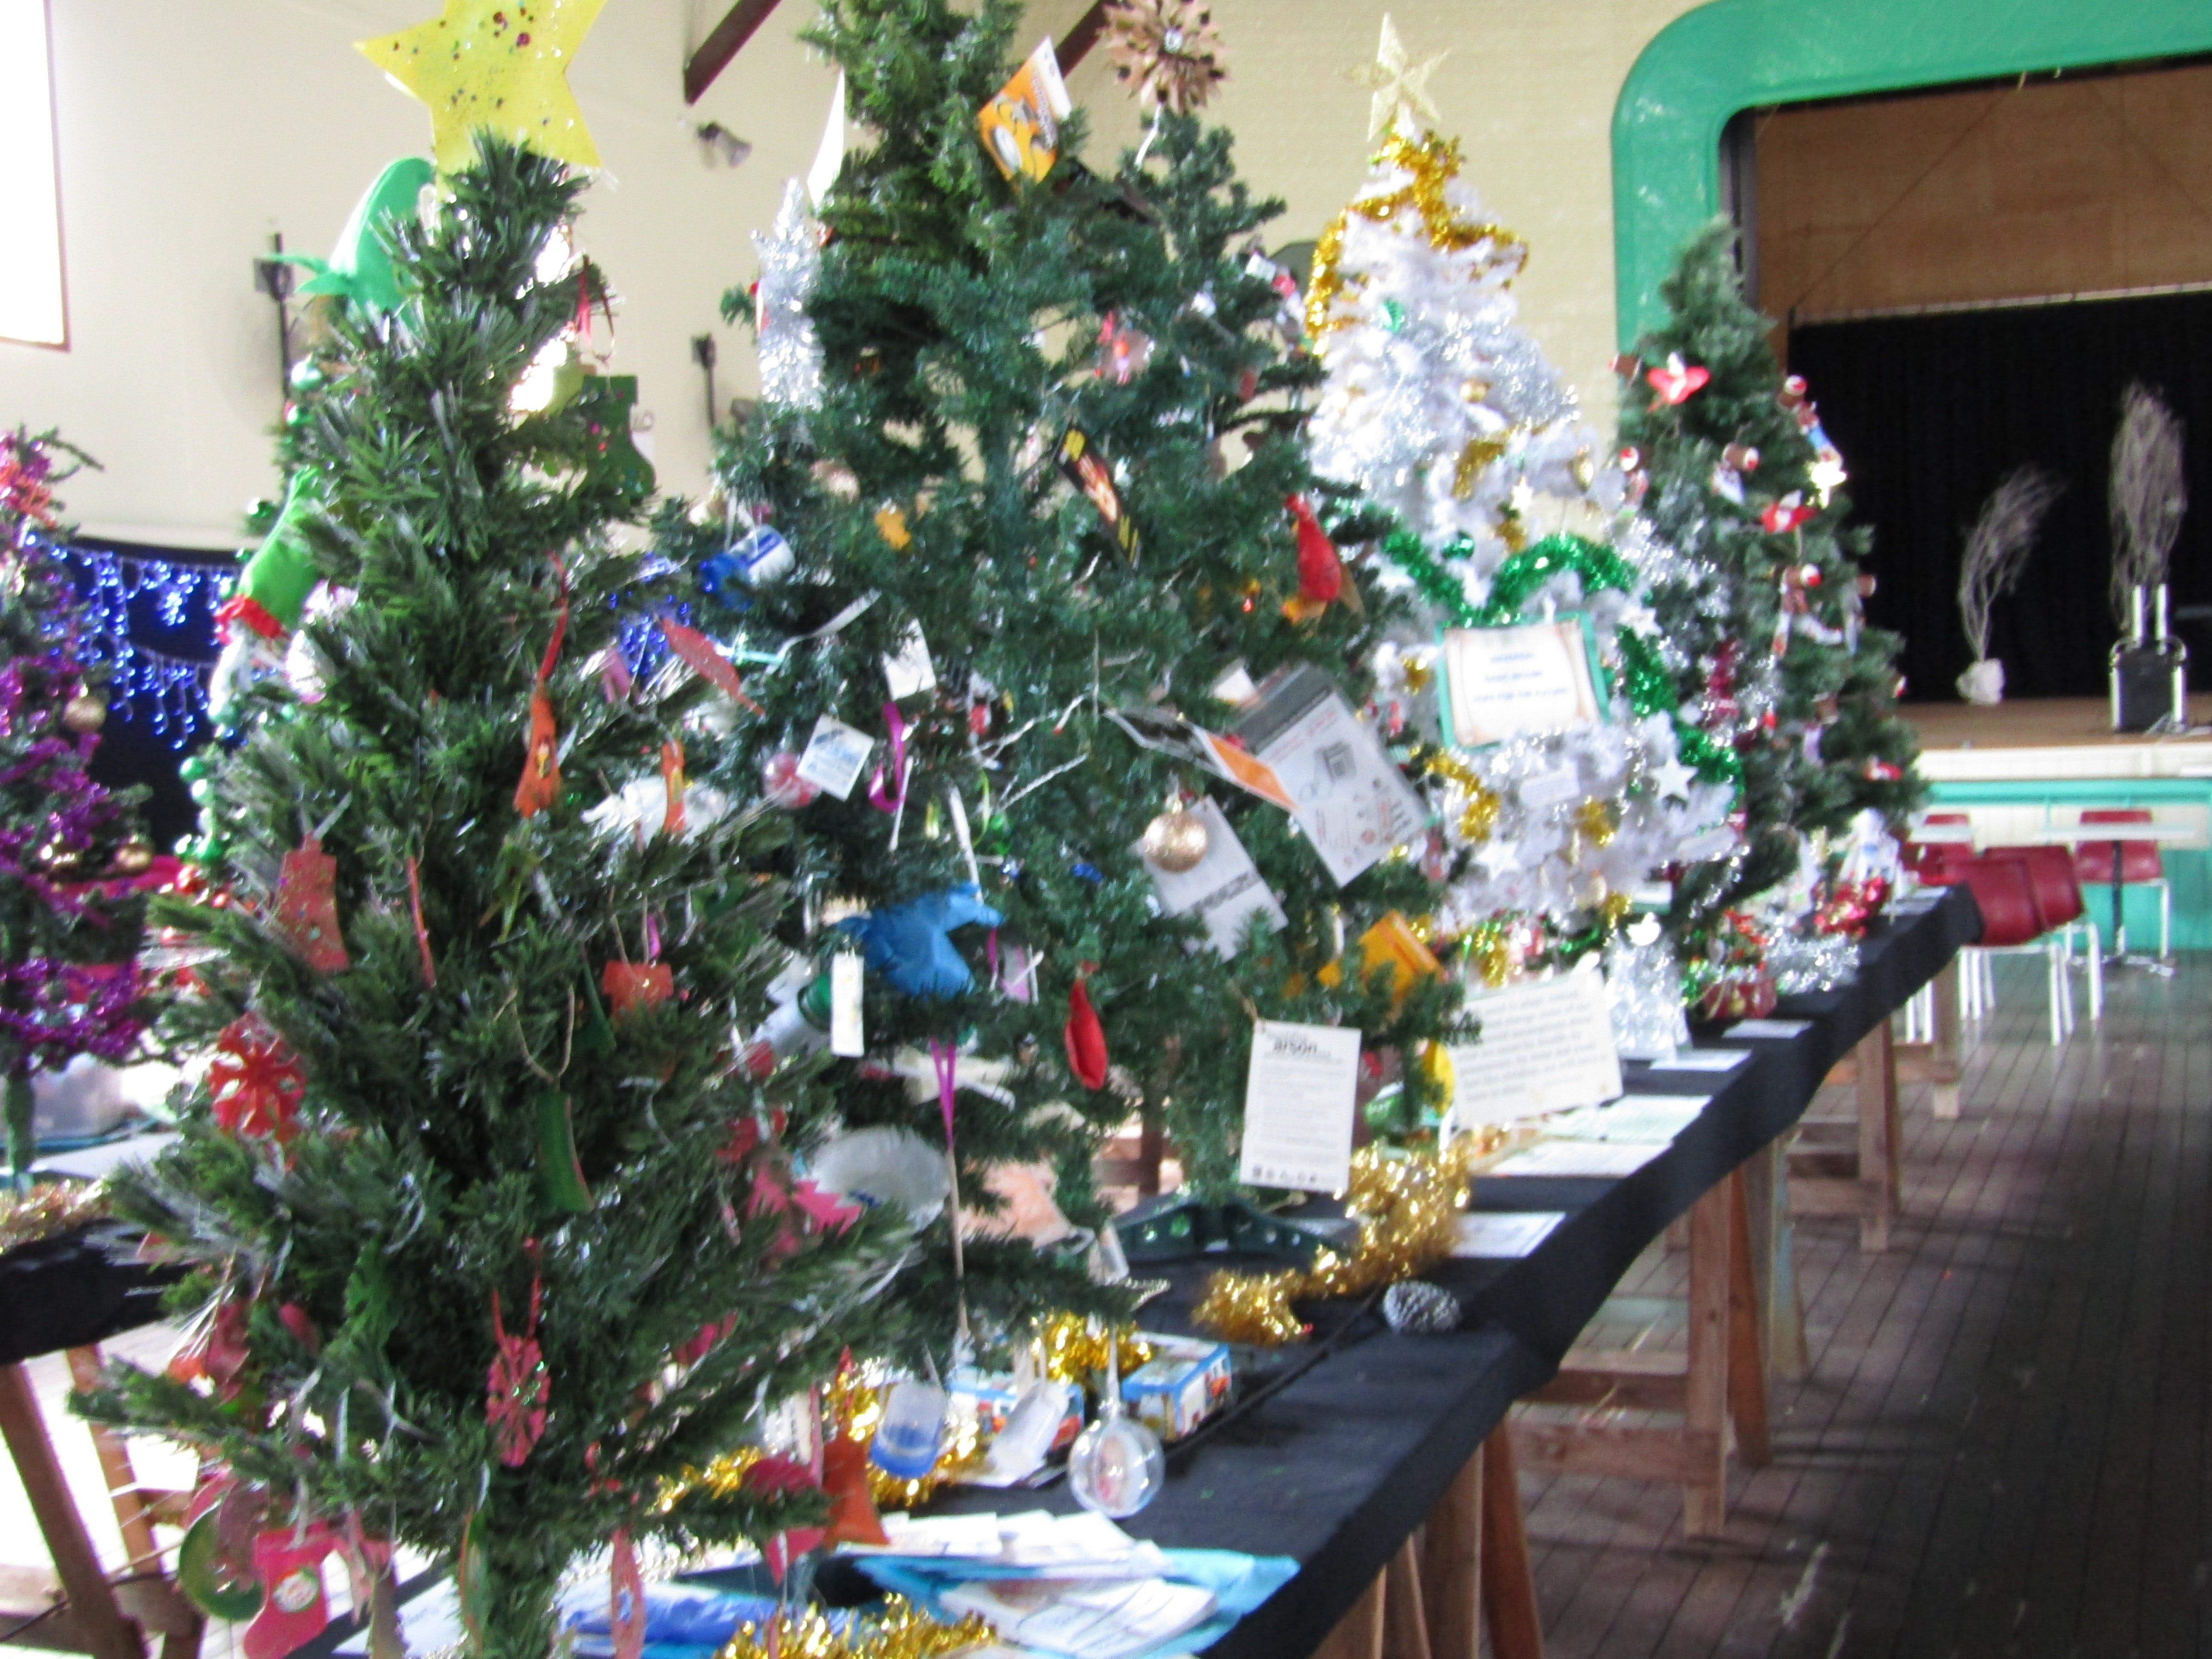 Mount Morgan Christmas Tree Festival - Accommodation Great Ocean Road